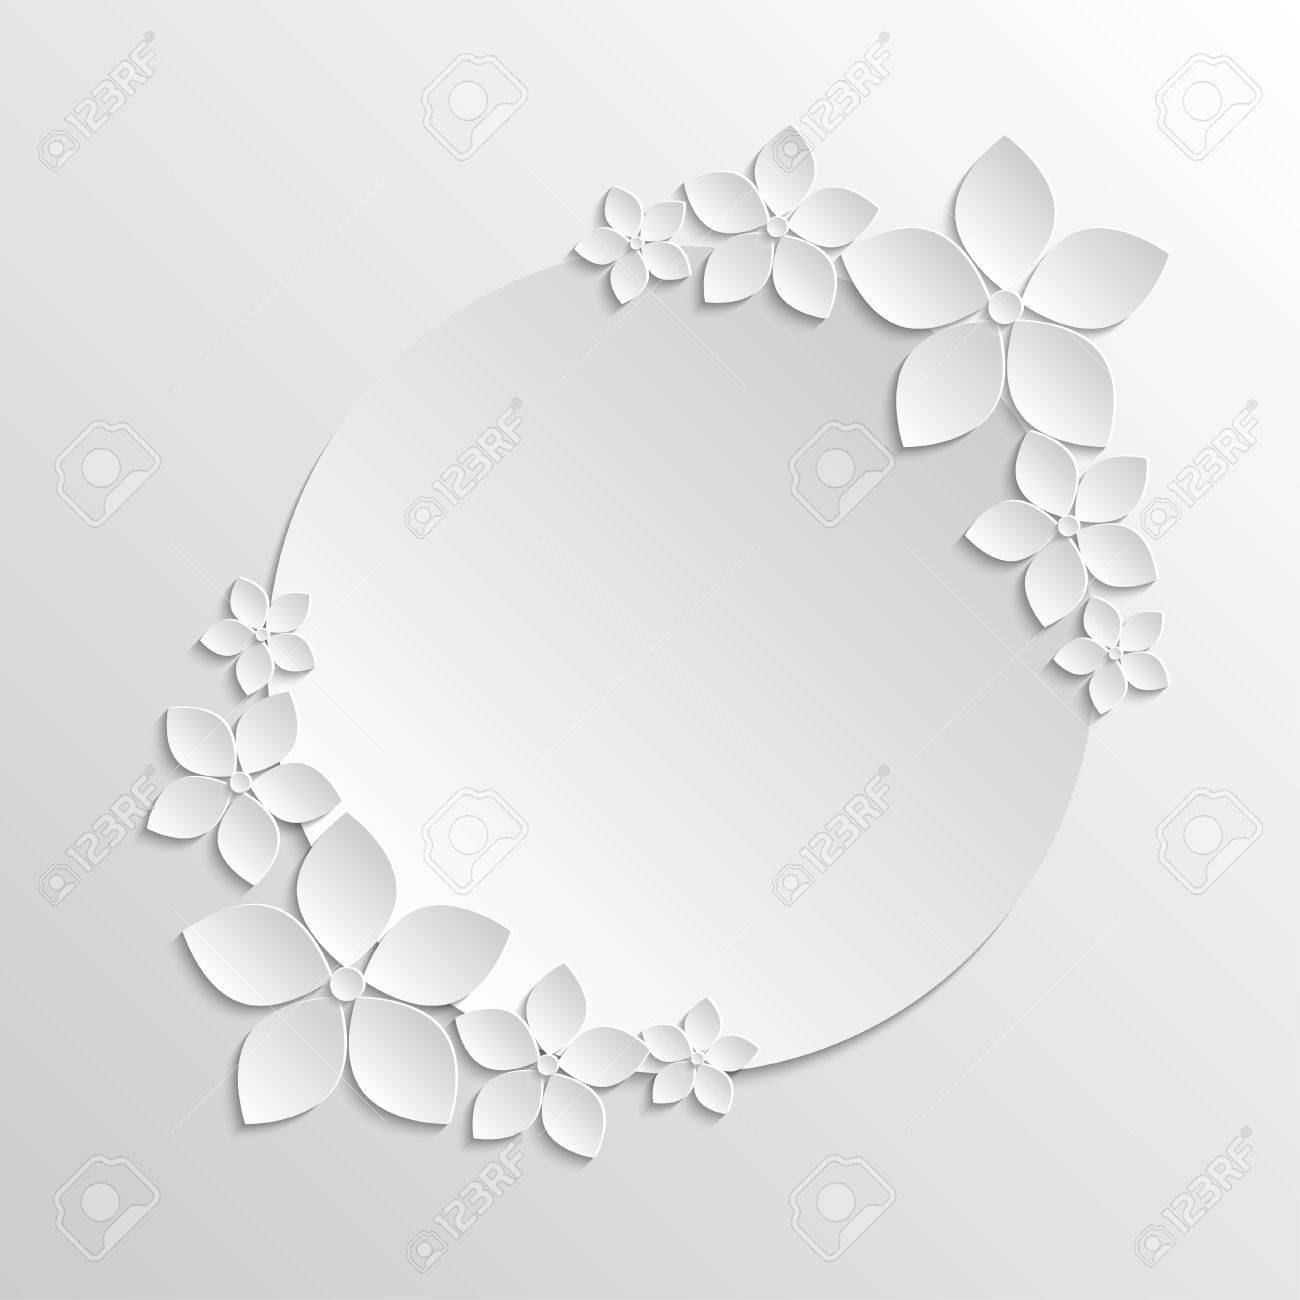 Background image grayscale - Paper Badge Template With Paper White Flowers On Grayscale Background Stock Vector 41162008